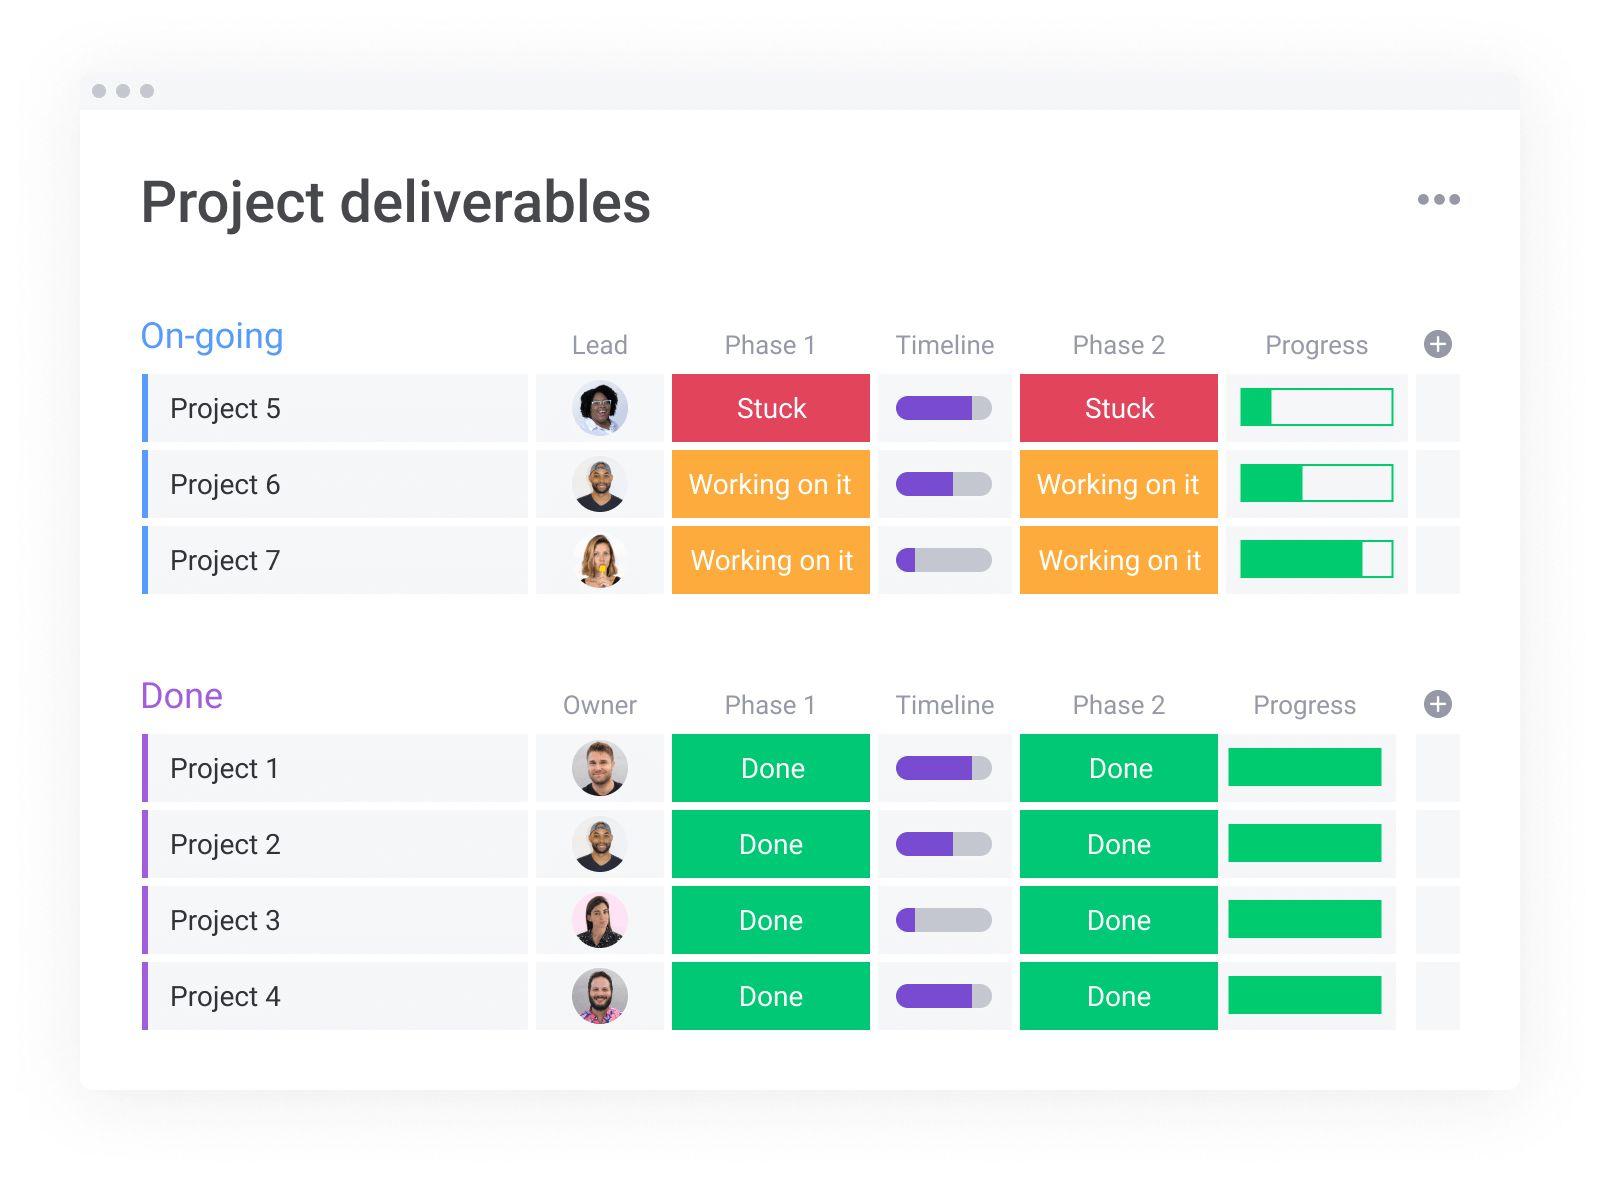 A screenshot of a sample of Project deliverables from Monday.com.